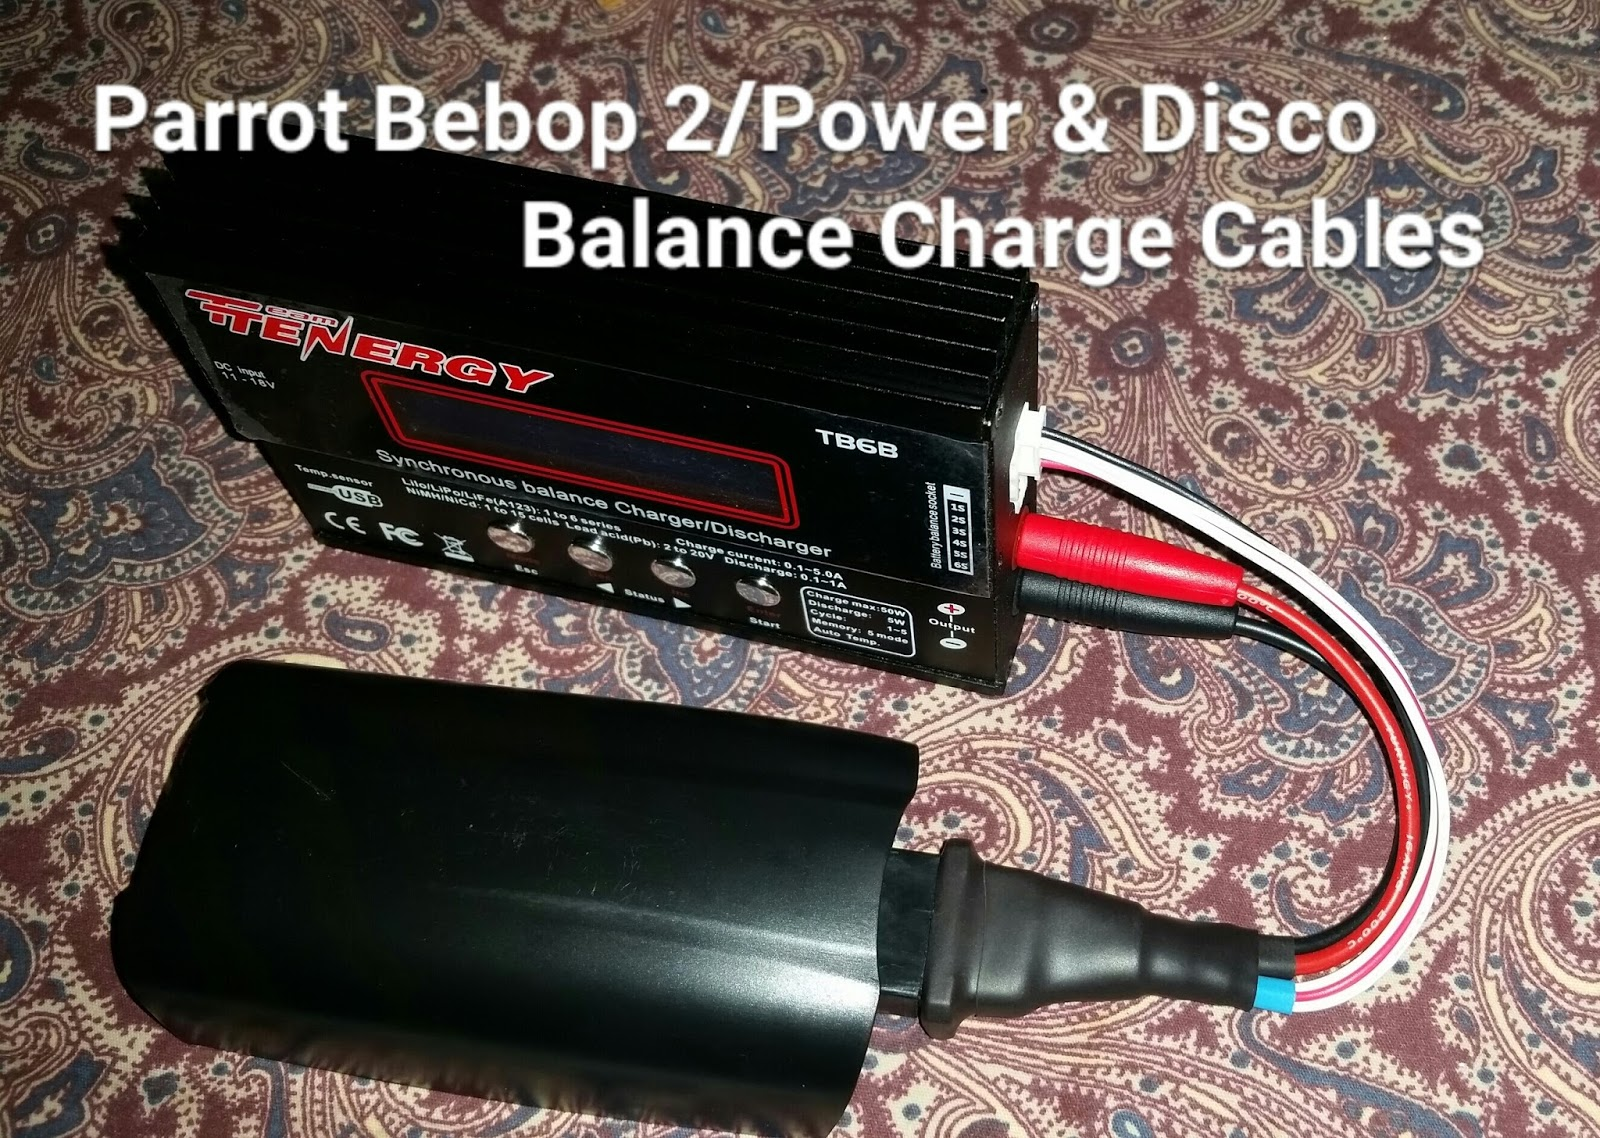 The High Pro Glow: For Sale - Parrot Bebop, Disco